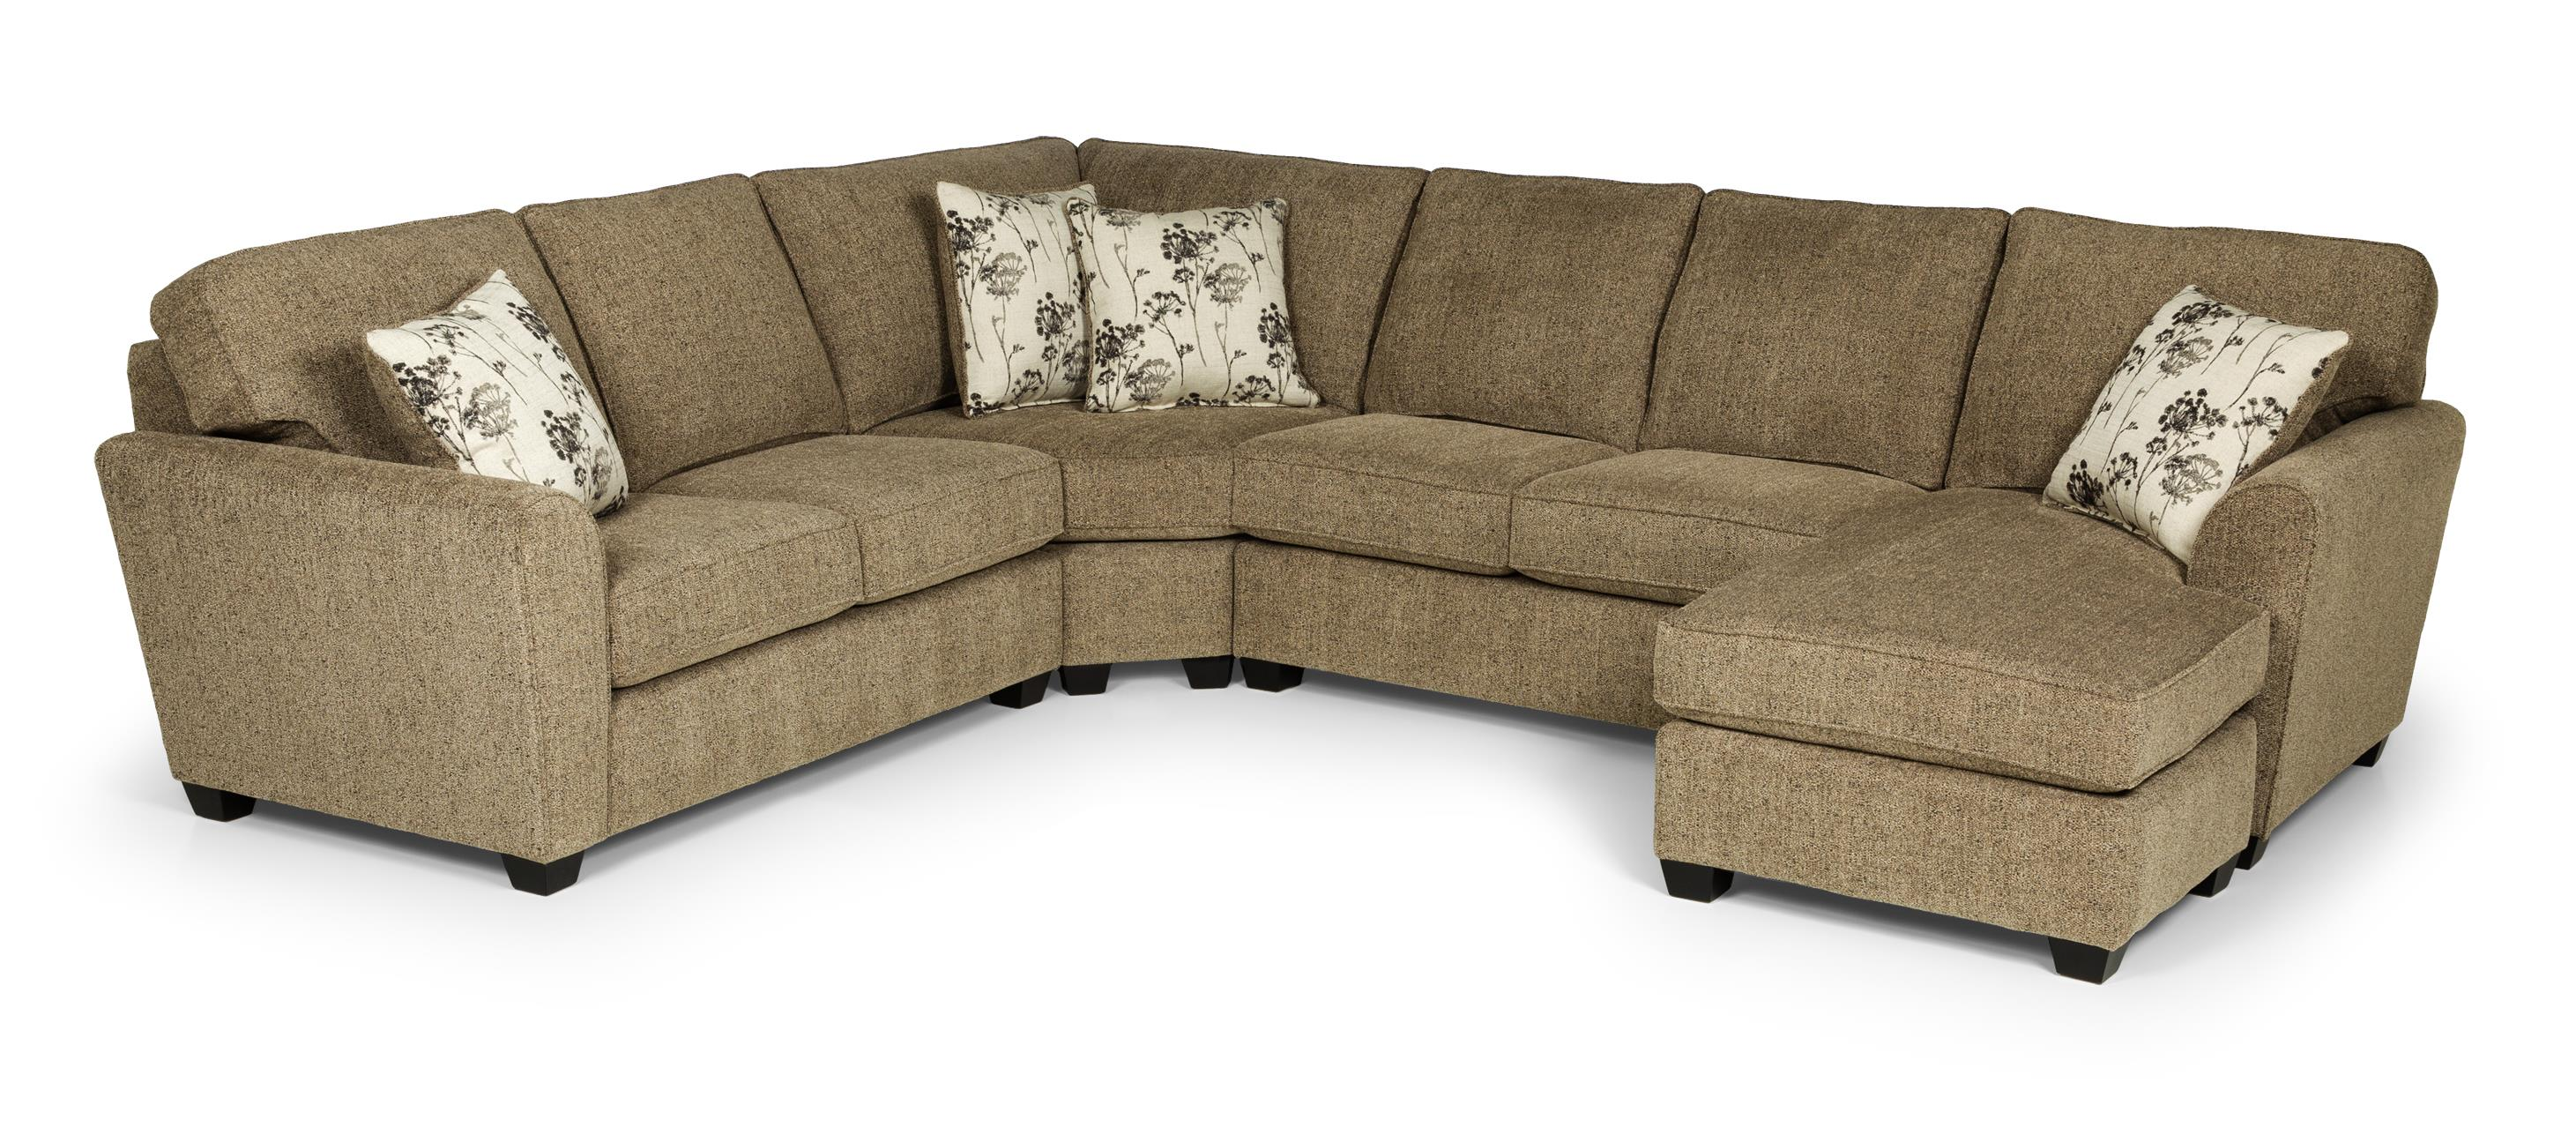 20469 3 Pc Sectional Sofa w/ LAF Chaise by Sunset Home at Sadler's Home Furnishings